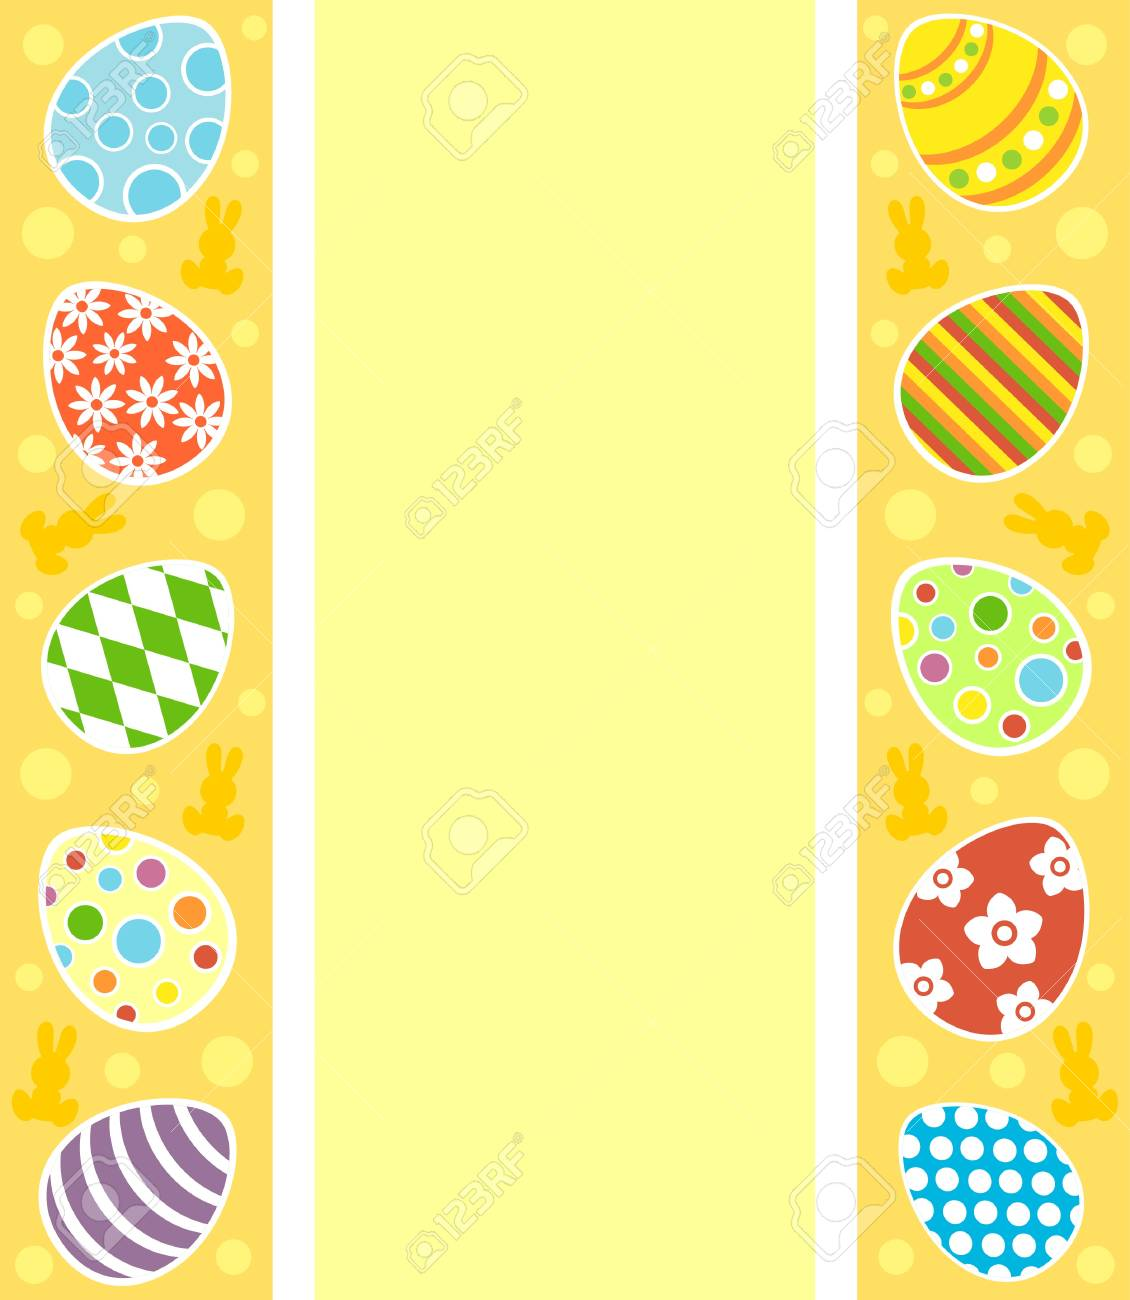 Easter background card vector illustration Stock Vector - 18518569